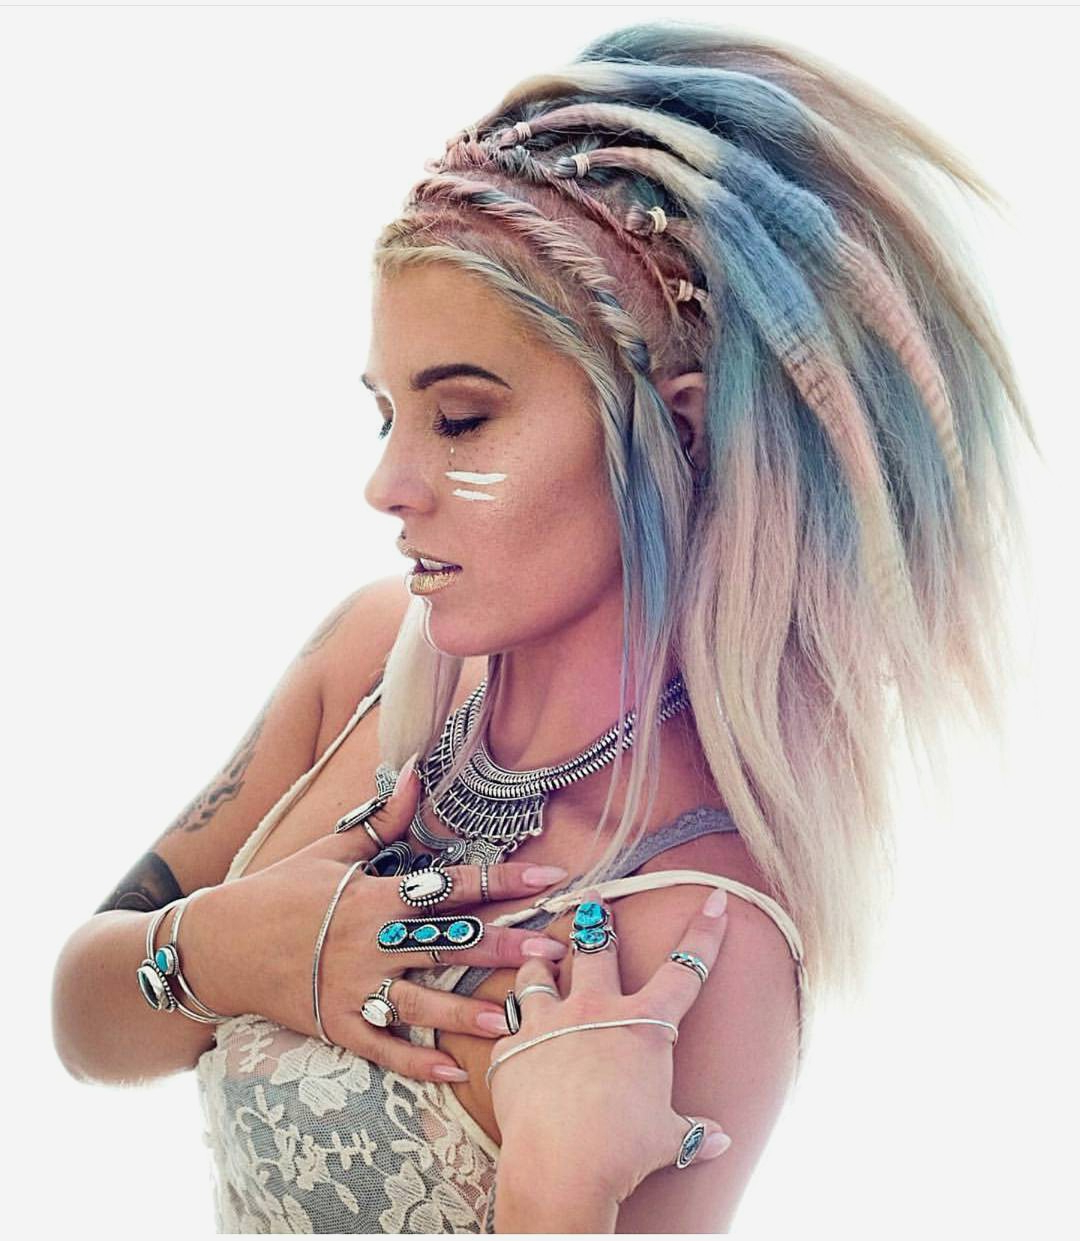 Hippie Hairstyles For Short Hair – Hairstyles 2018 Inside Hippie Short Hairstyles (View 3 of 25)